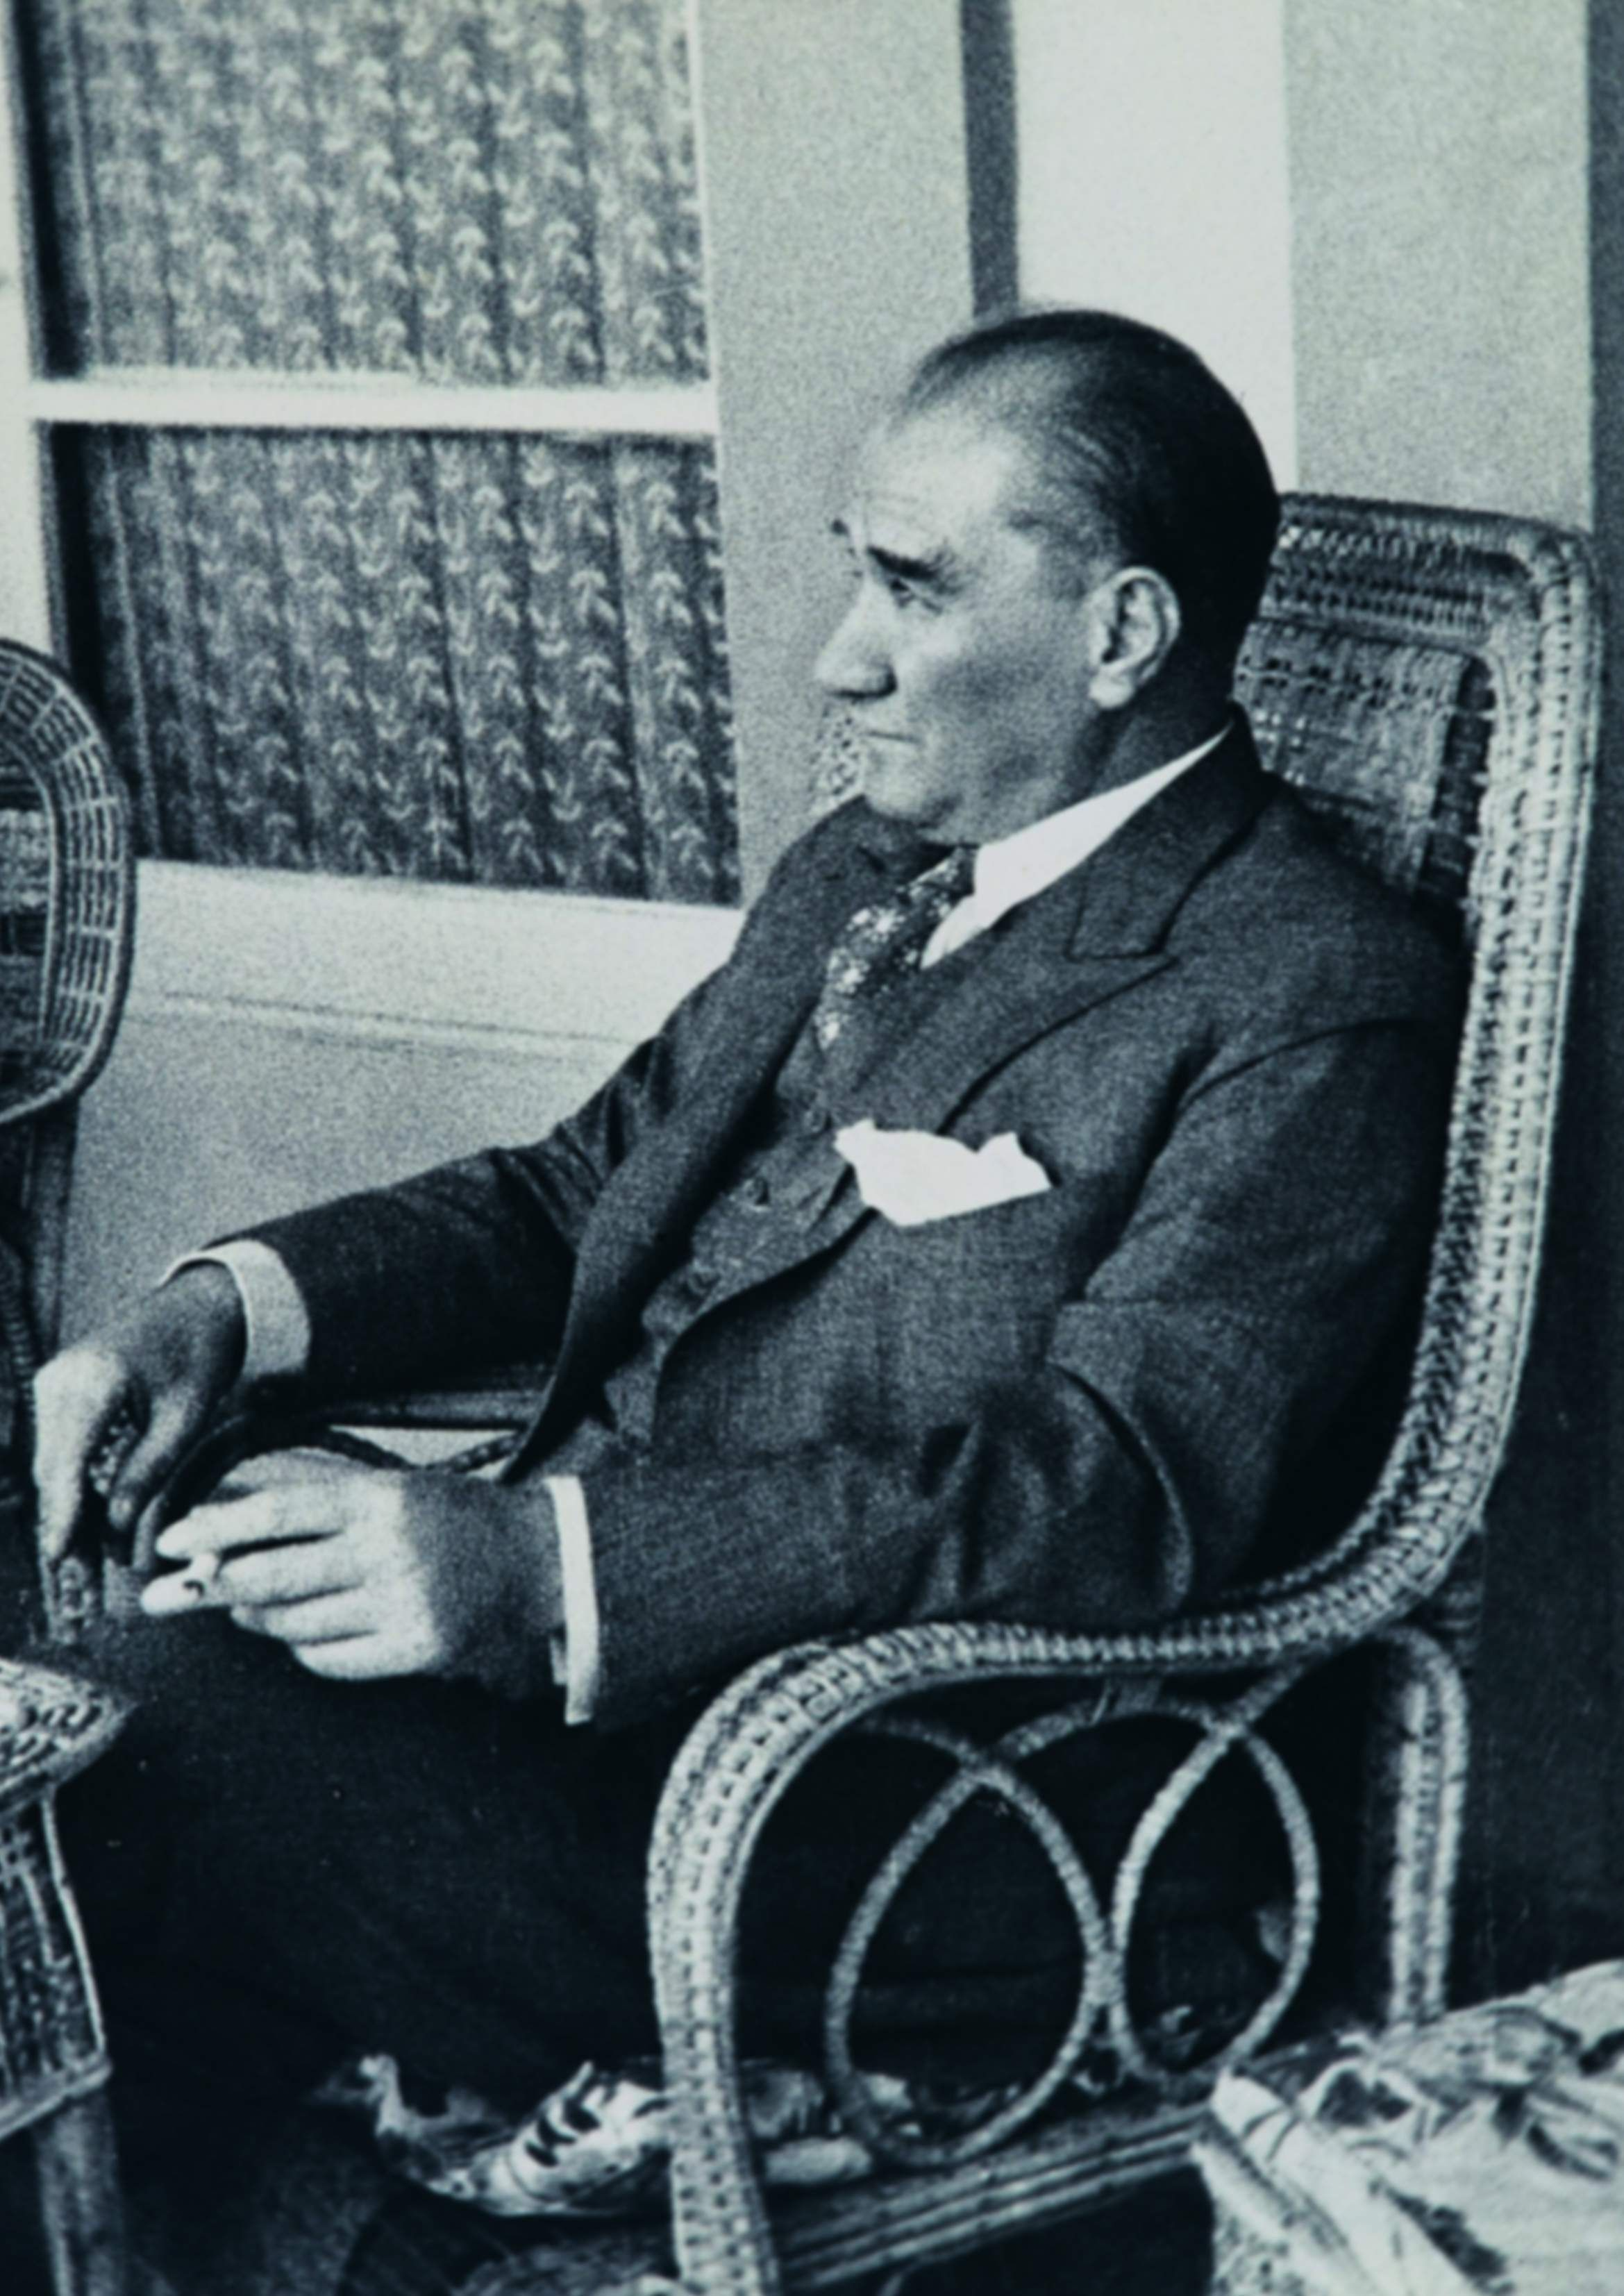 mustafa kemal Ataturk HD Wallpaper